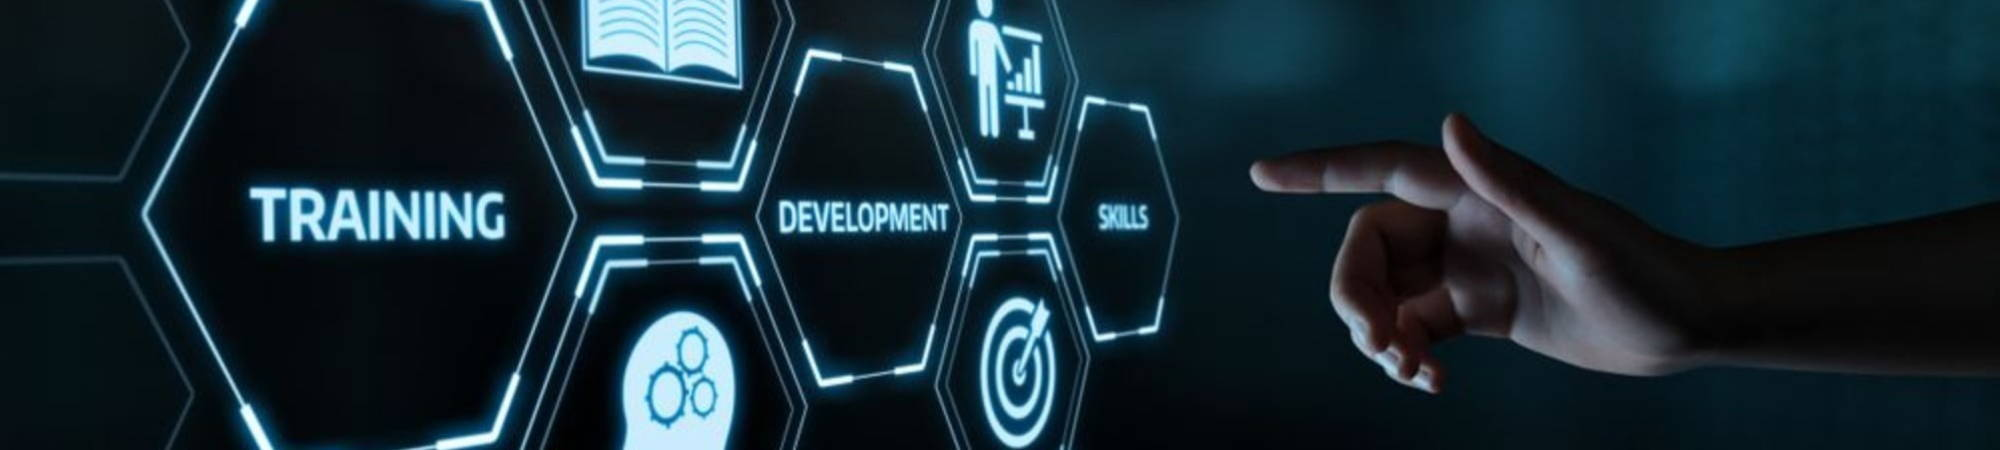 Futuristic training, development and skills matrix